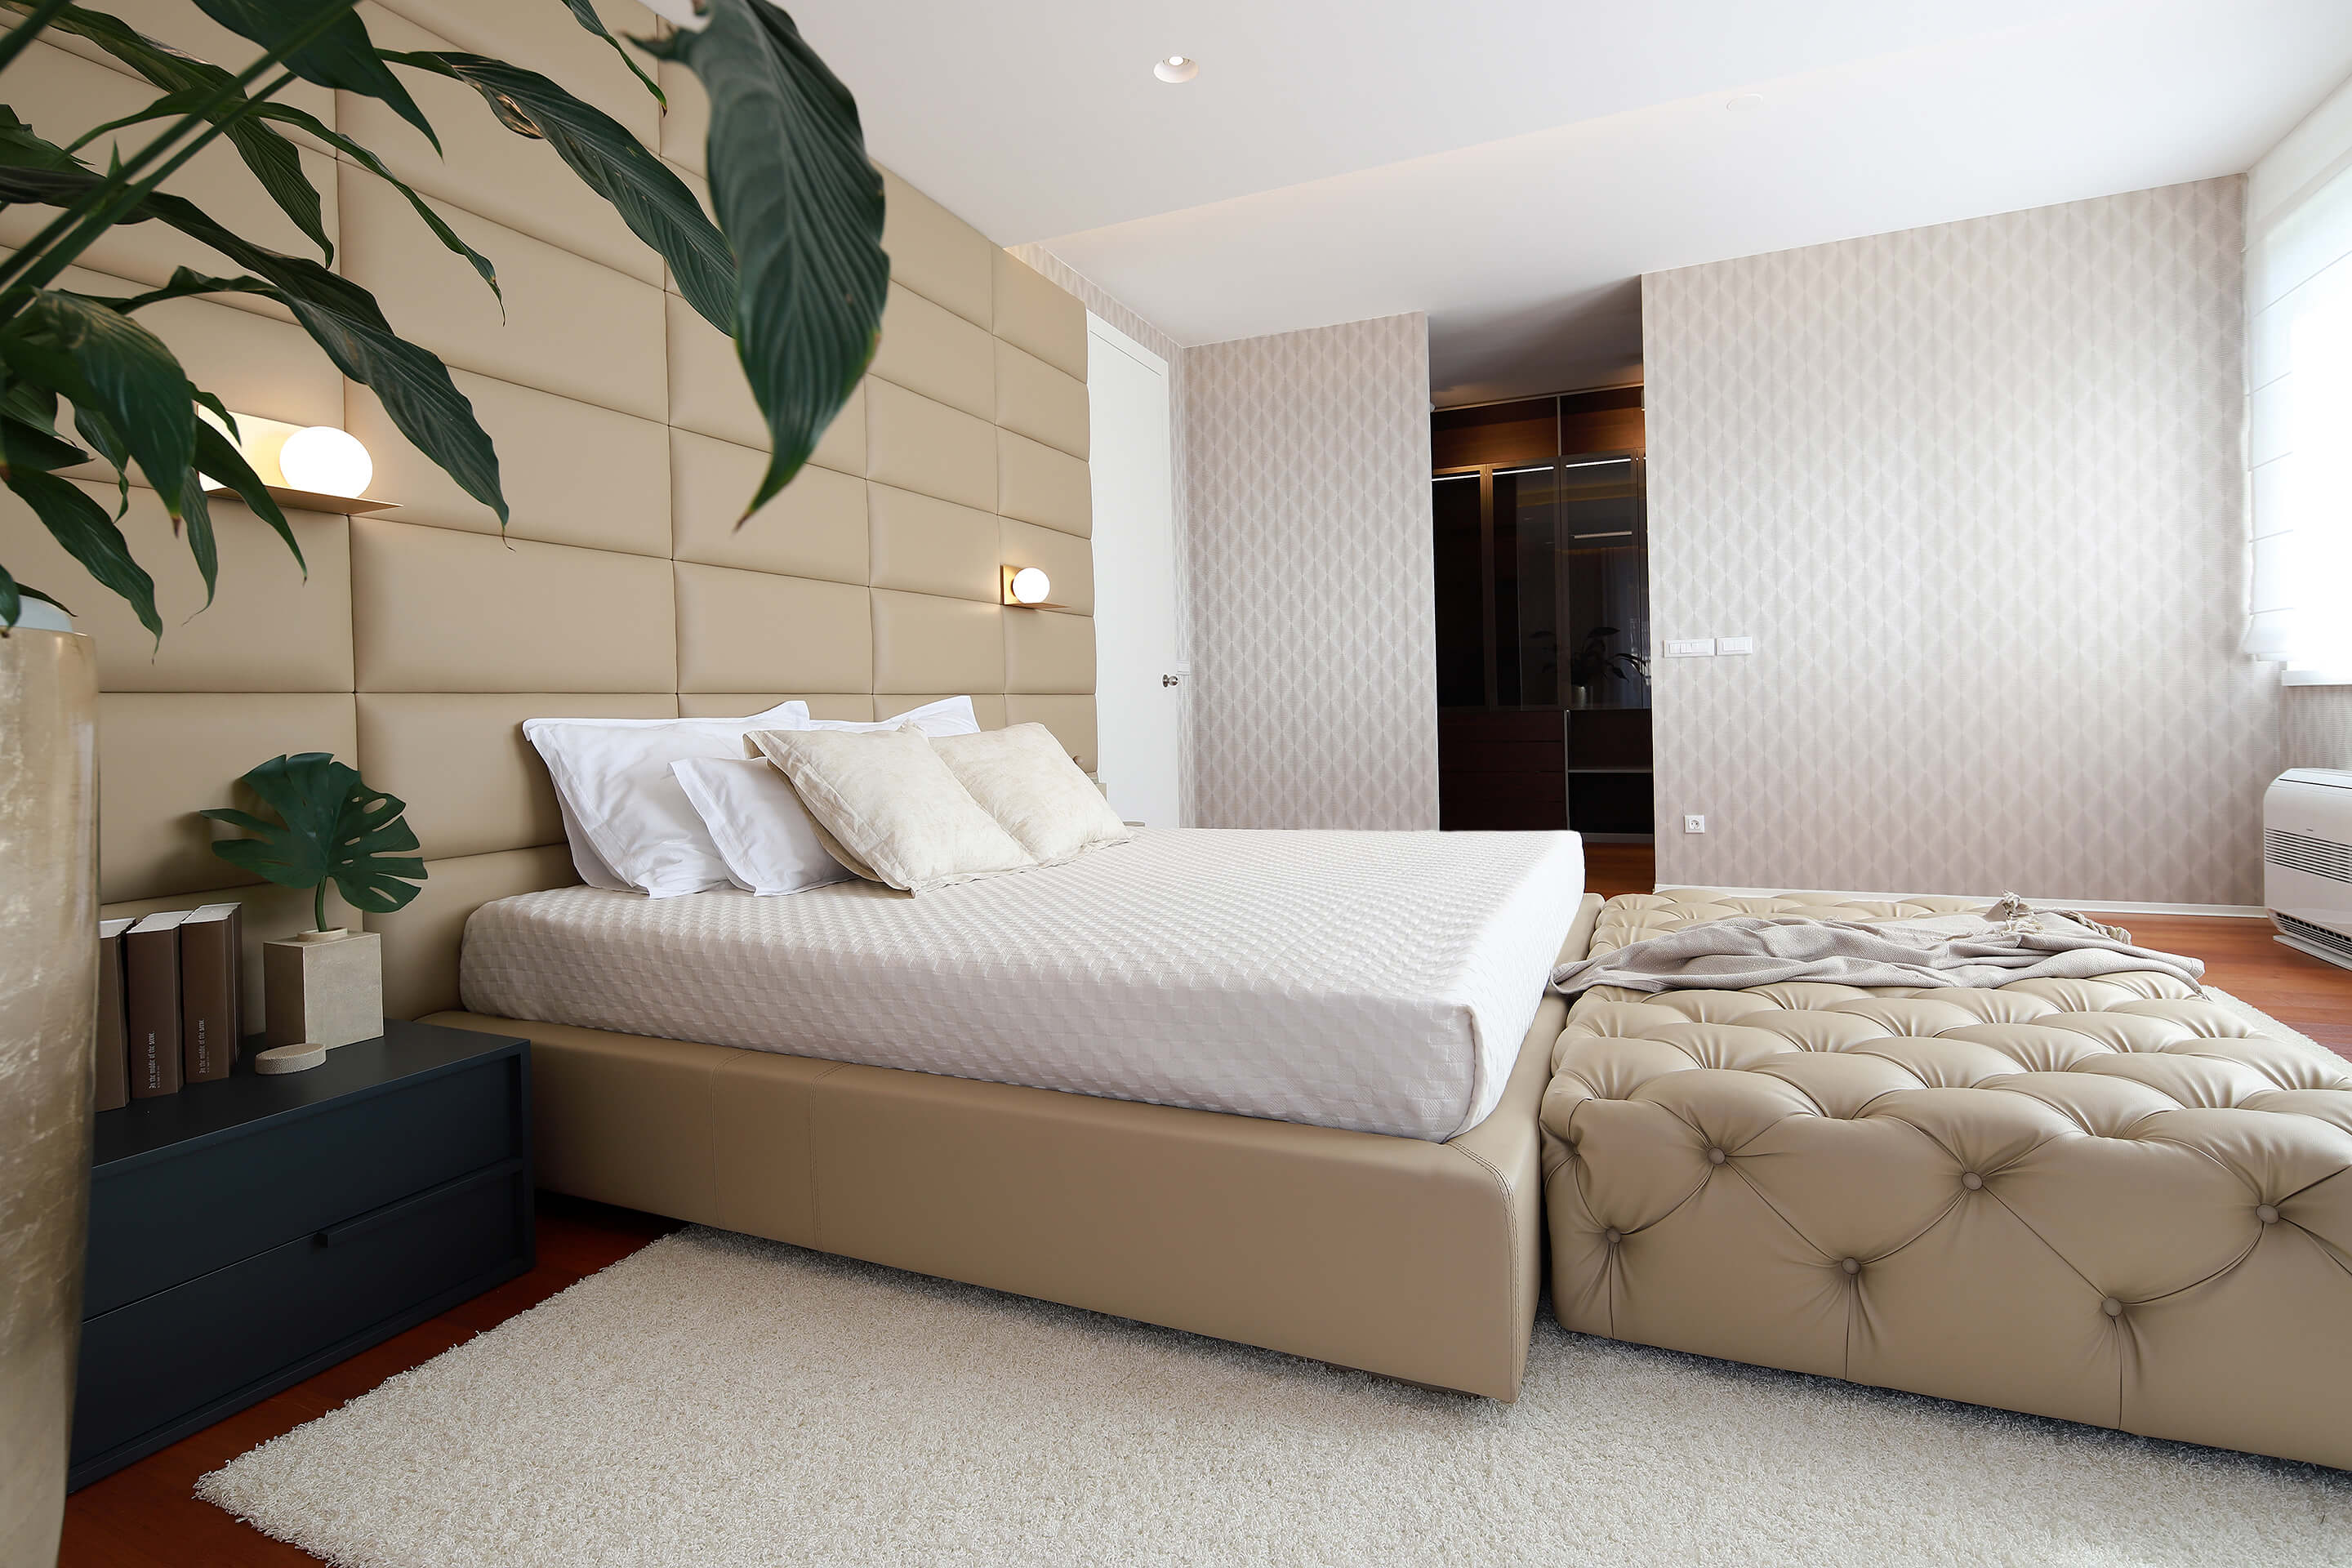 penthouse - master bedroom - spacious - modern